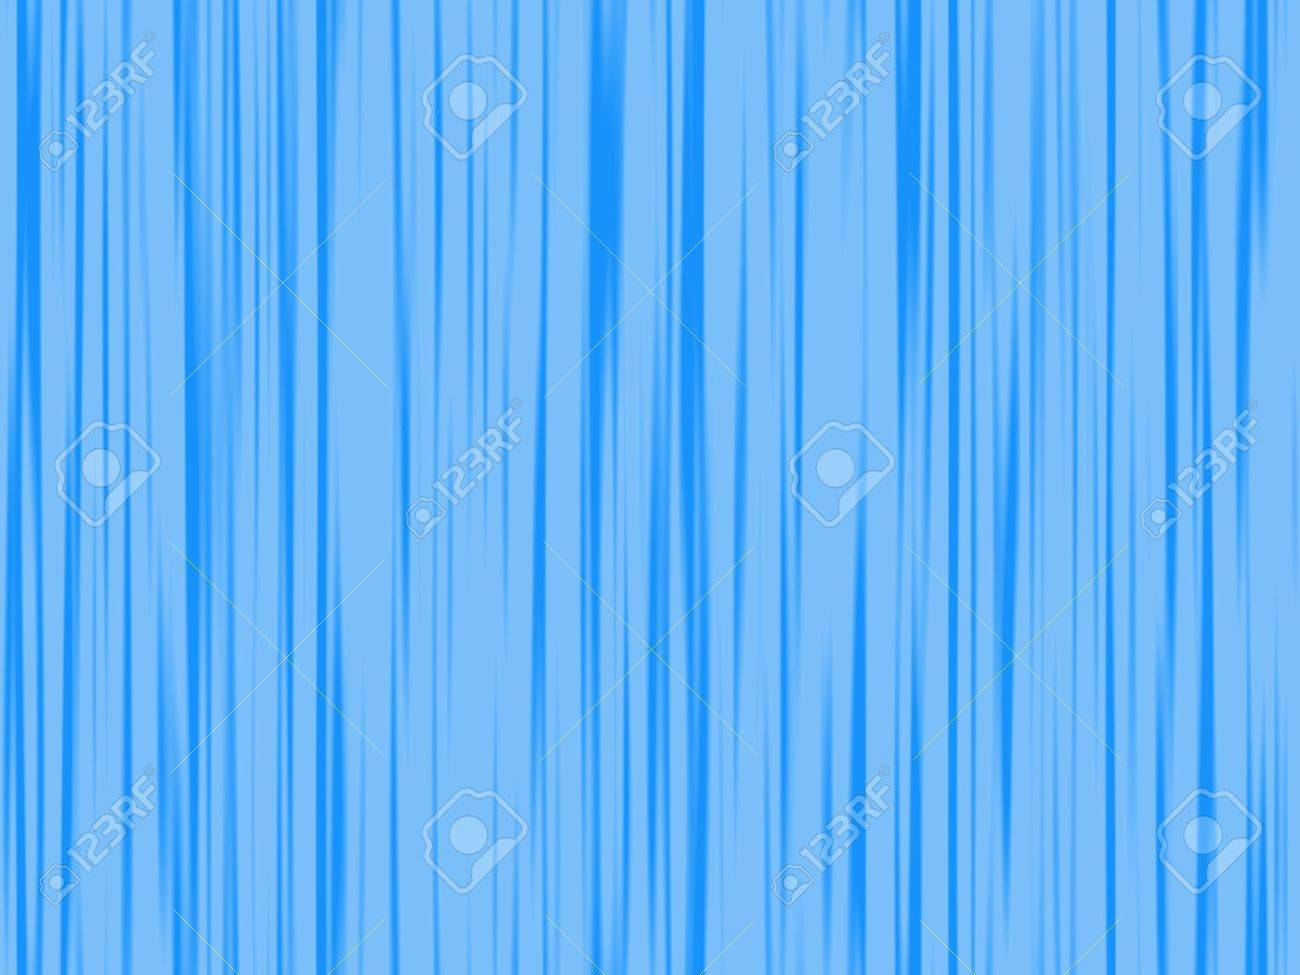 Blue curtain backdrop - Blue Curtain Backdrop Blue Curtain Backdrop Stock Photo Abstract Blue Curtains Backdrop